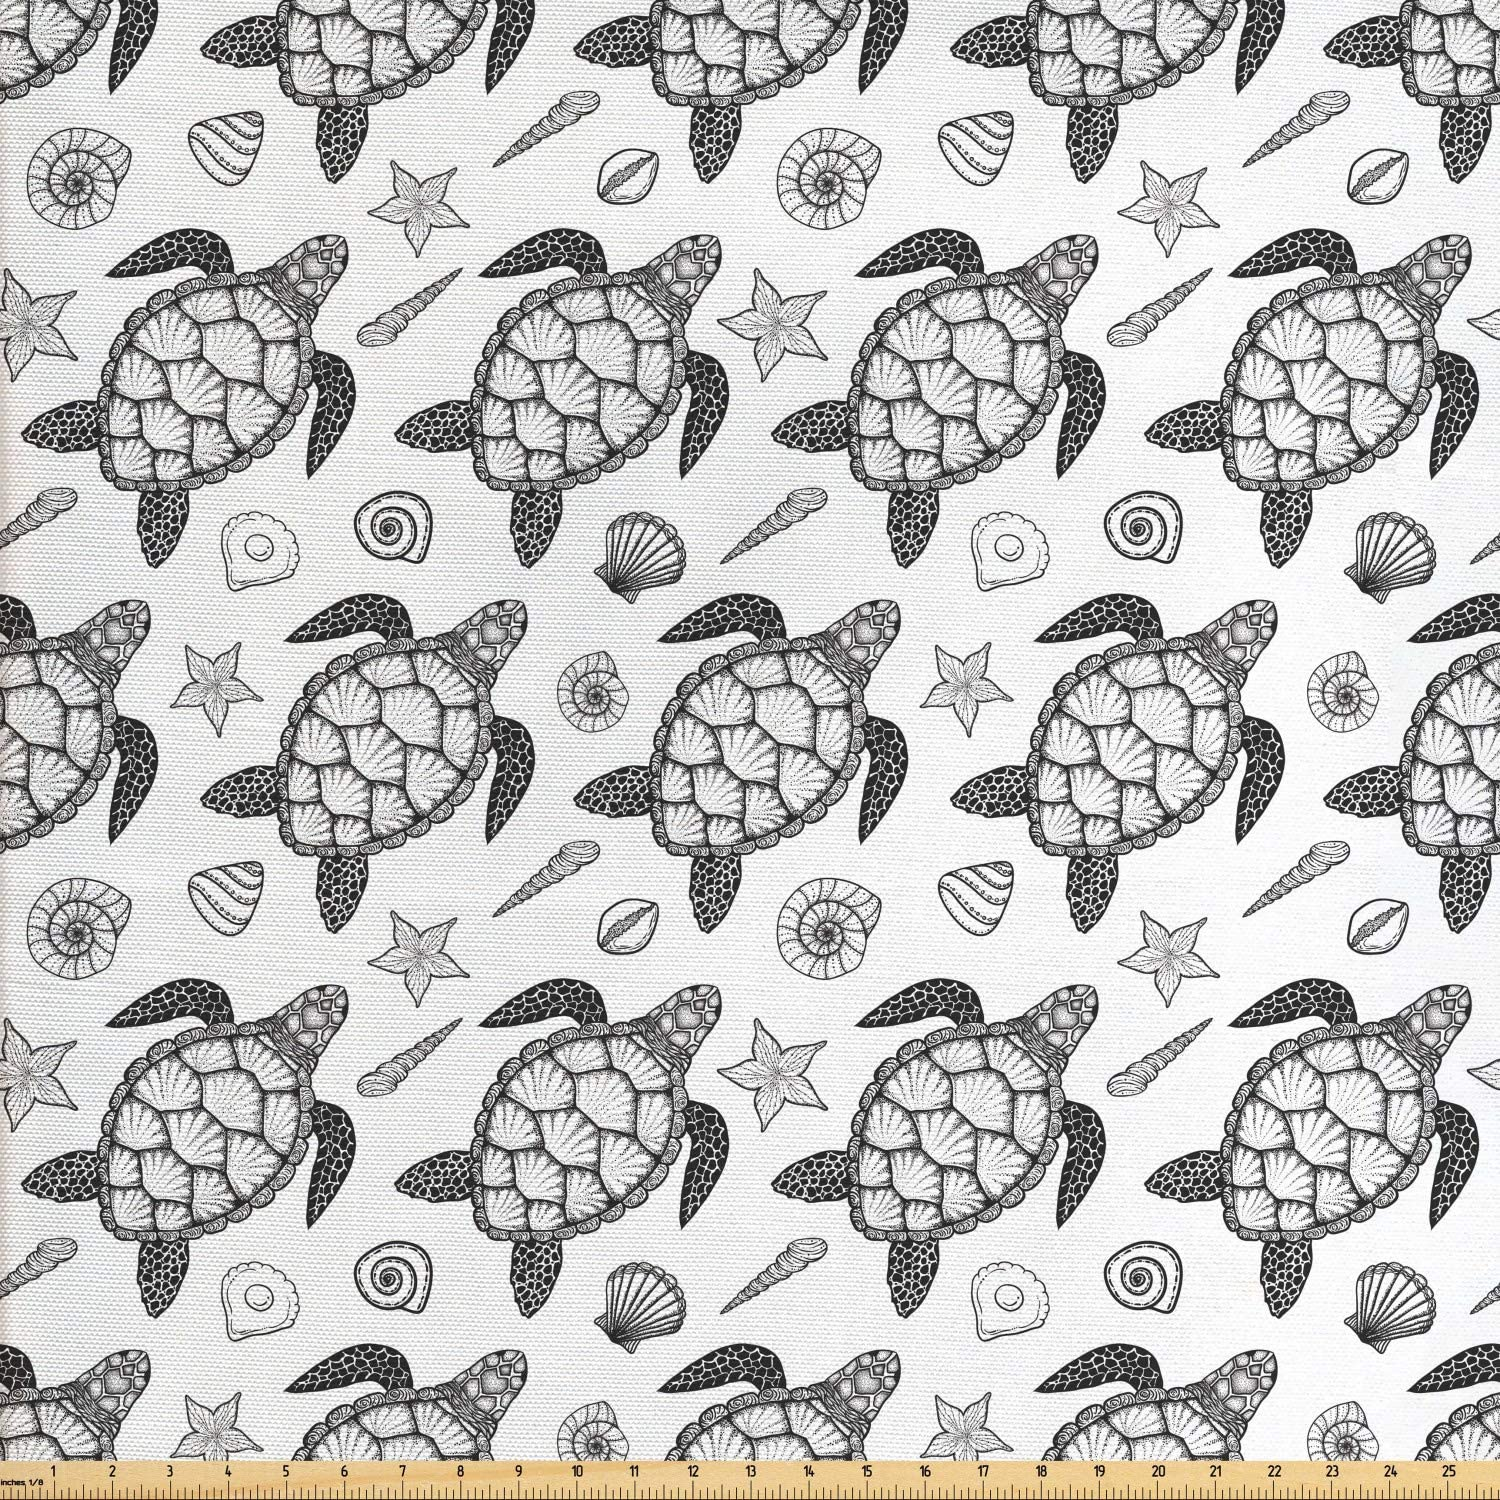 Ambesonne Turtle Fabric by The Yard, Nautical Animals Pattern Sea Turtle Shells and Starfish Monochrome Illustration, Decorative Fabric for Upholstery and Home Accents, Black and White